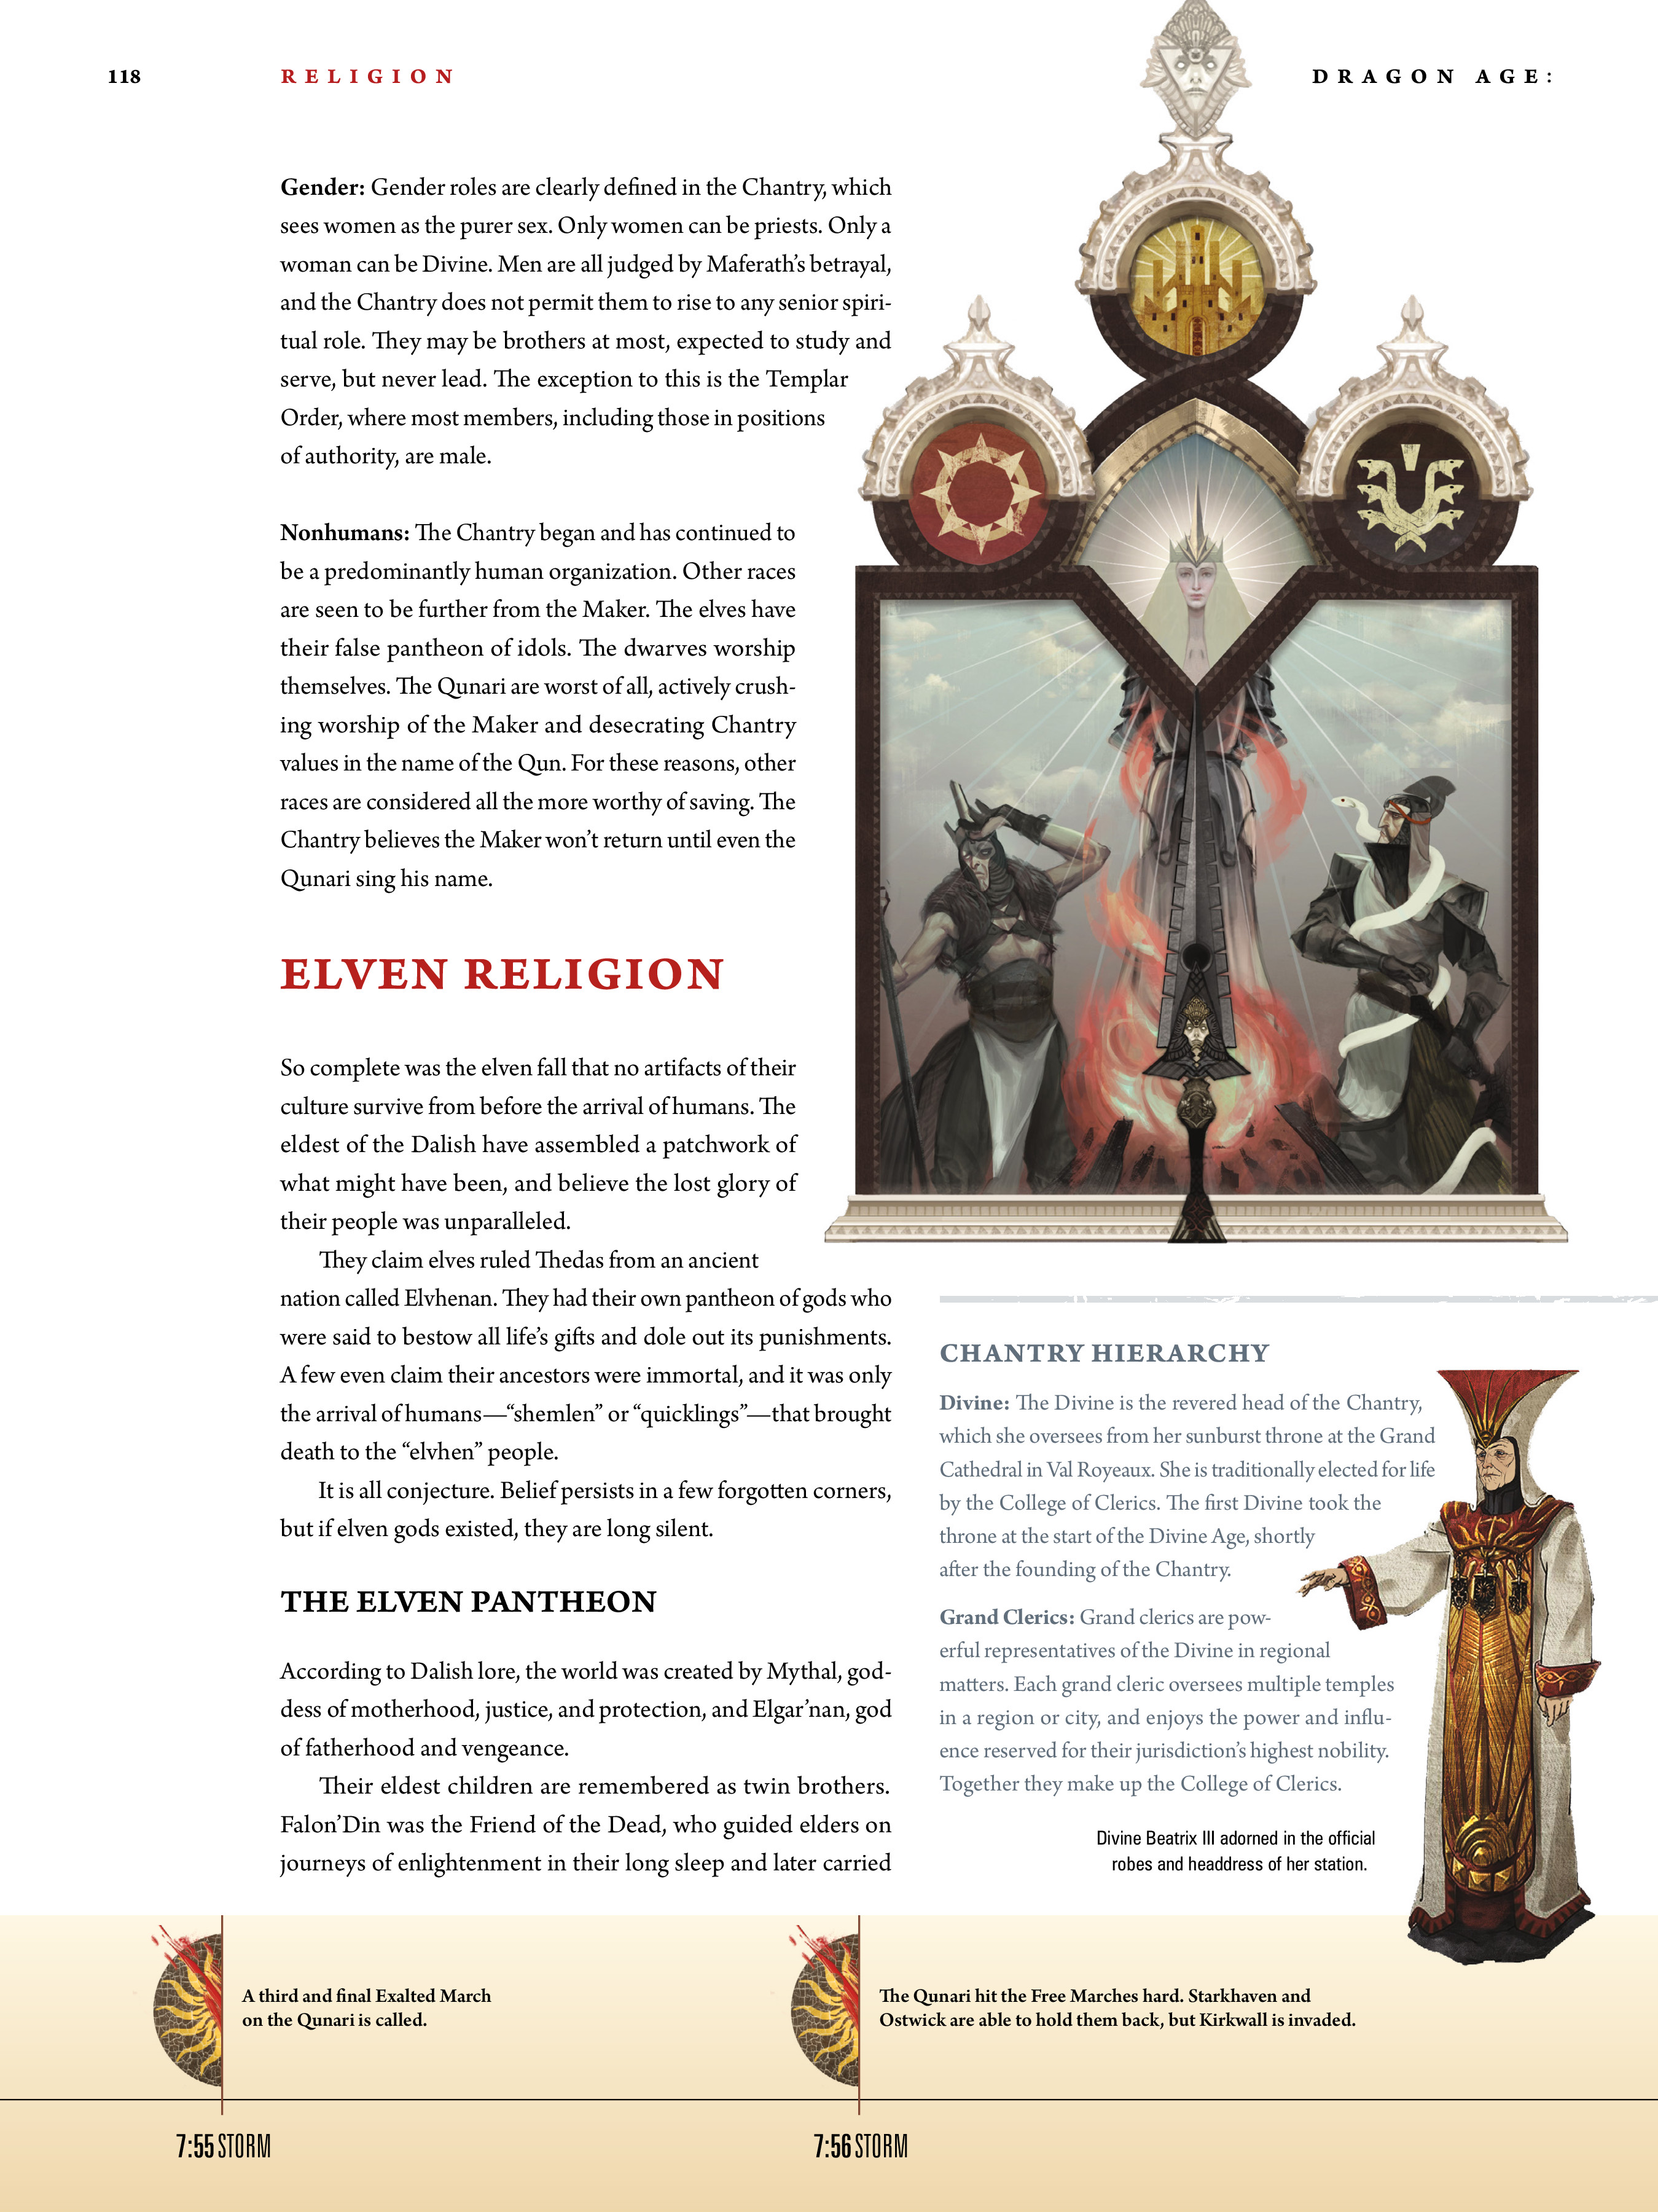 Read online Dragon Age: The World of Thedas comic -  Issue # TPB 1 - 97